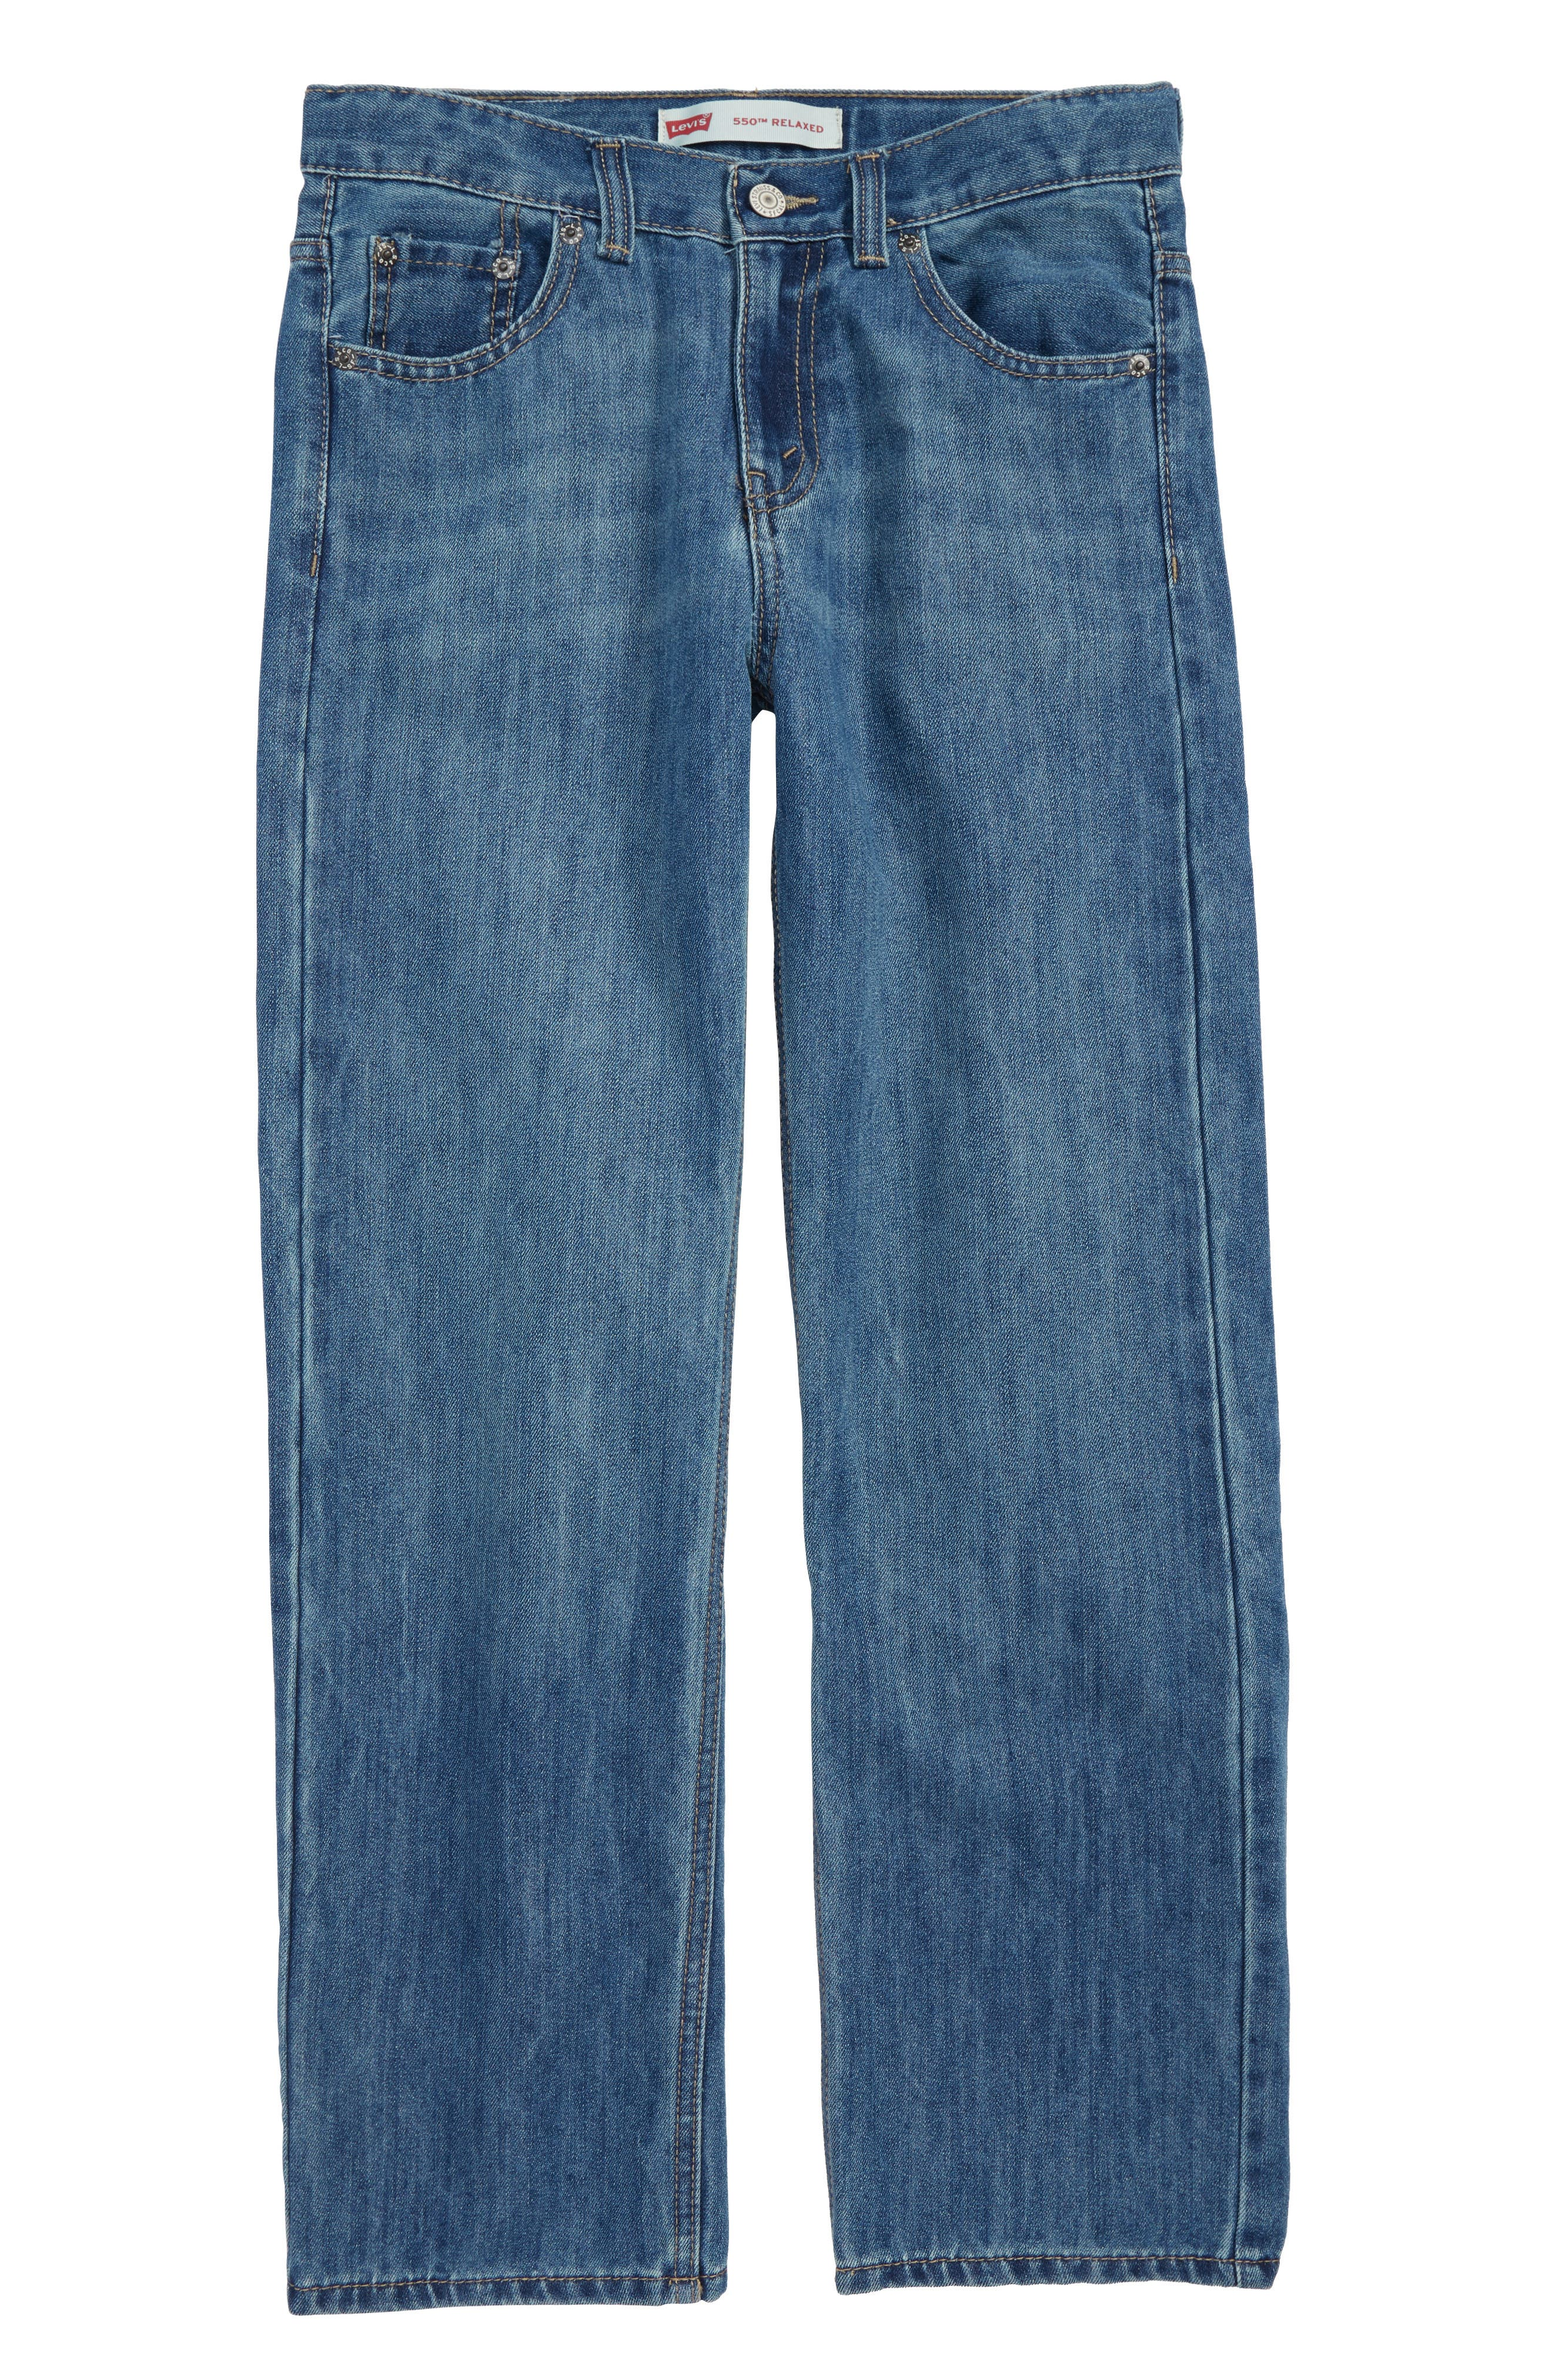 550<sup>™</sup> Relaxed Fit Jeans,                             Main thumbnail 1, color,                             426